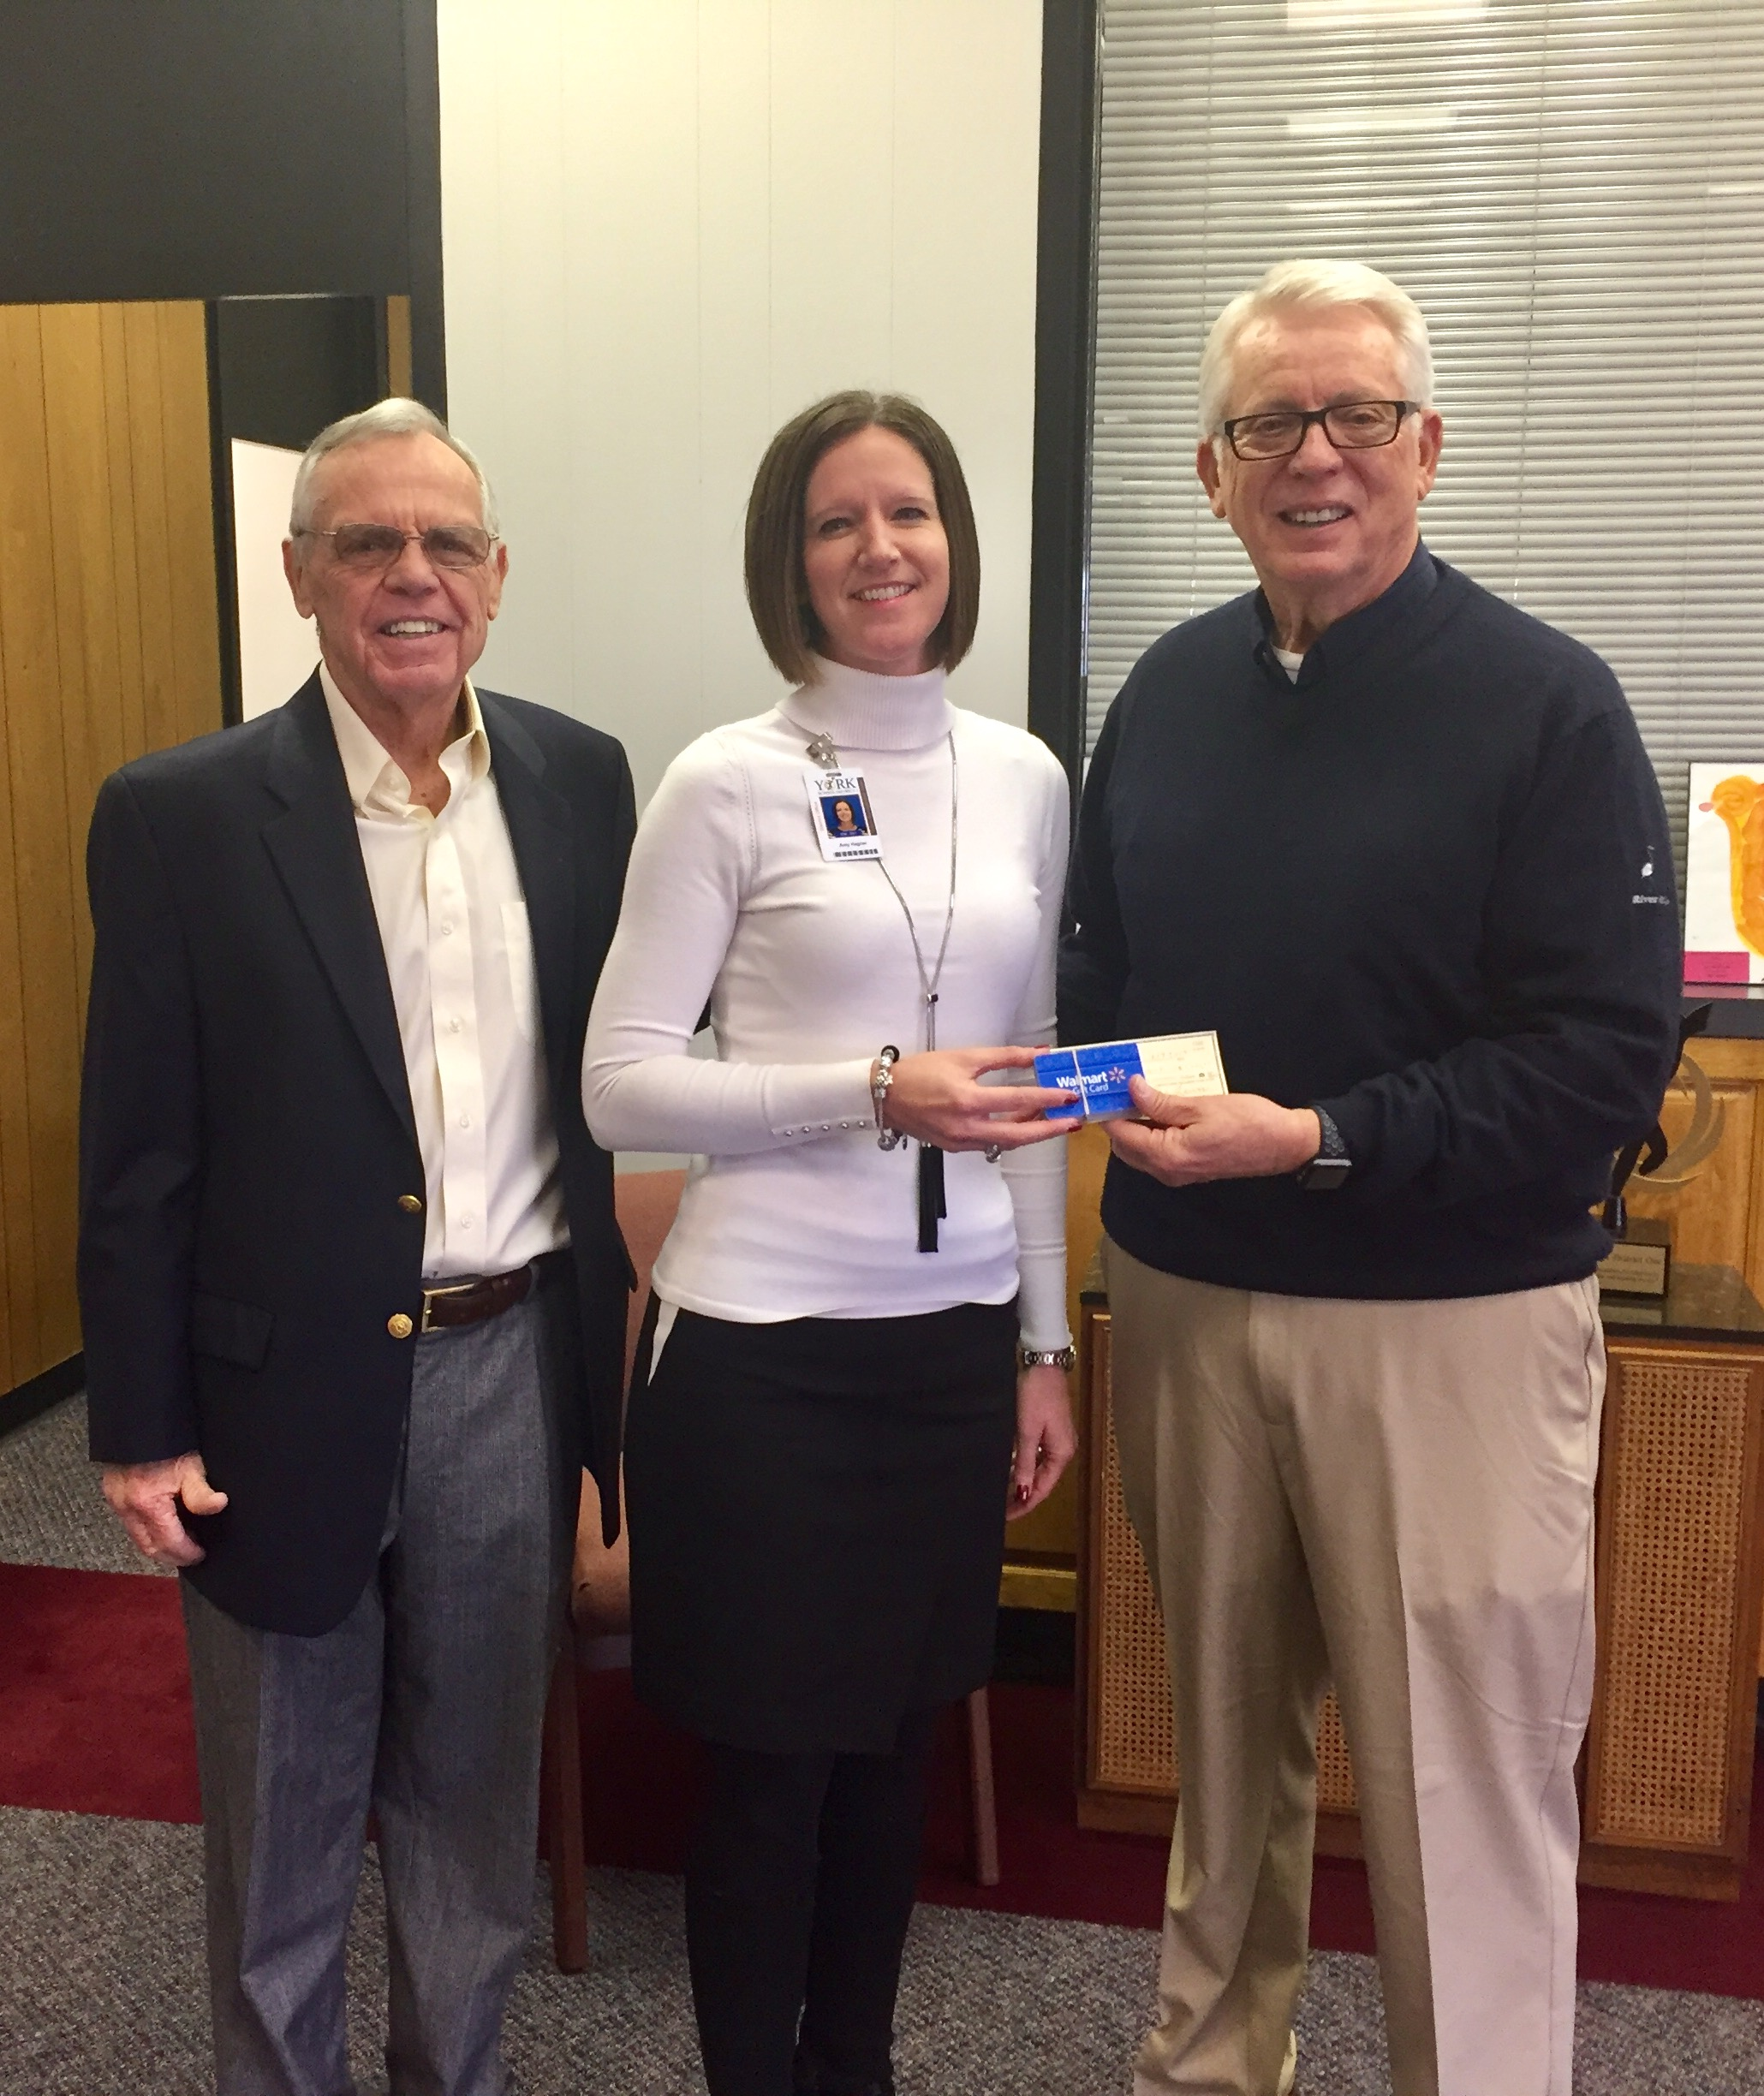 Board Member Jay Moore and President Dave Brown present a check and gift cards to Amy Hagner, Director of Finance for the York School District to aid in their efforts to provide assistance to homeless and children in need throughout the school district.